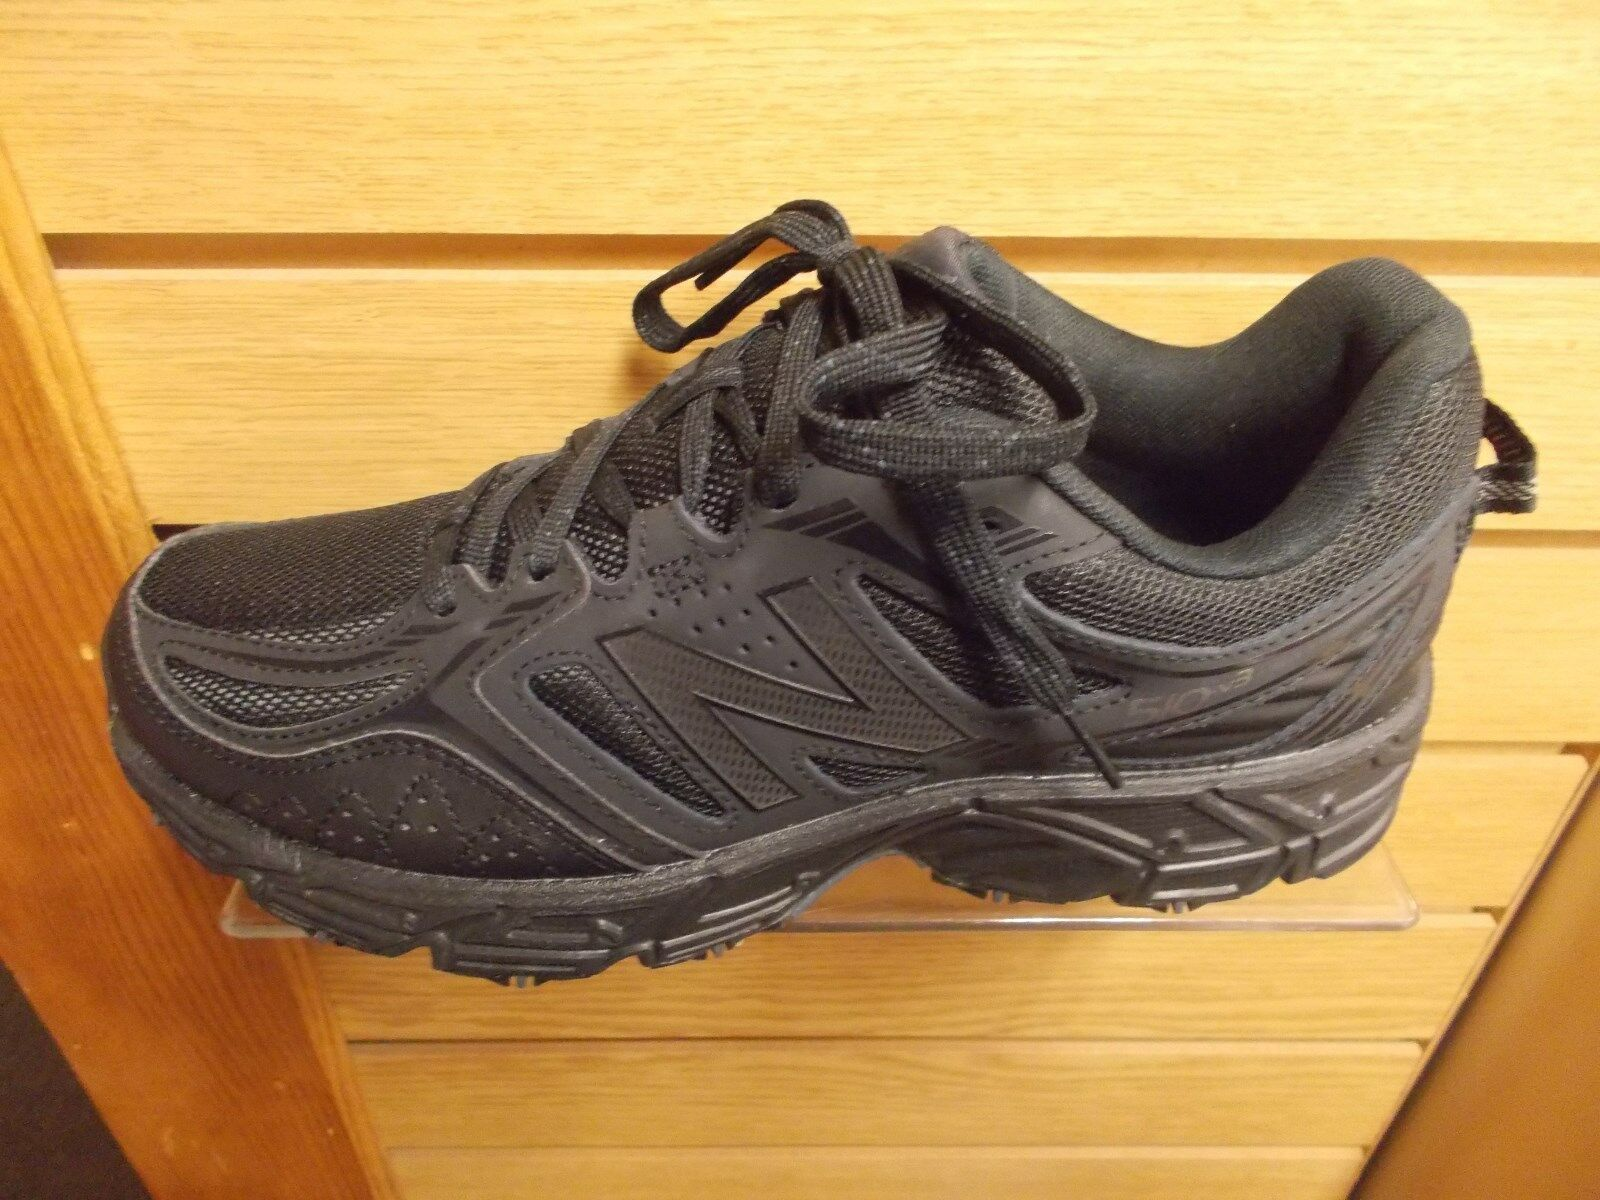 NEW BALANCE MEN'S MT 510 TRAIL RUNNING OR WALKING SHOES BLACK MEDIUM D   NEW